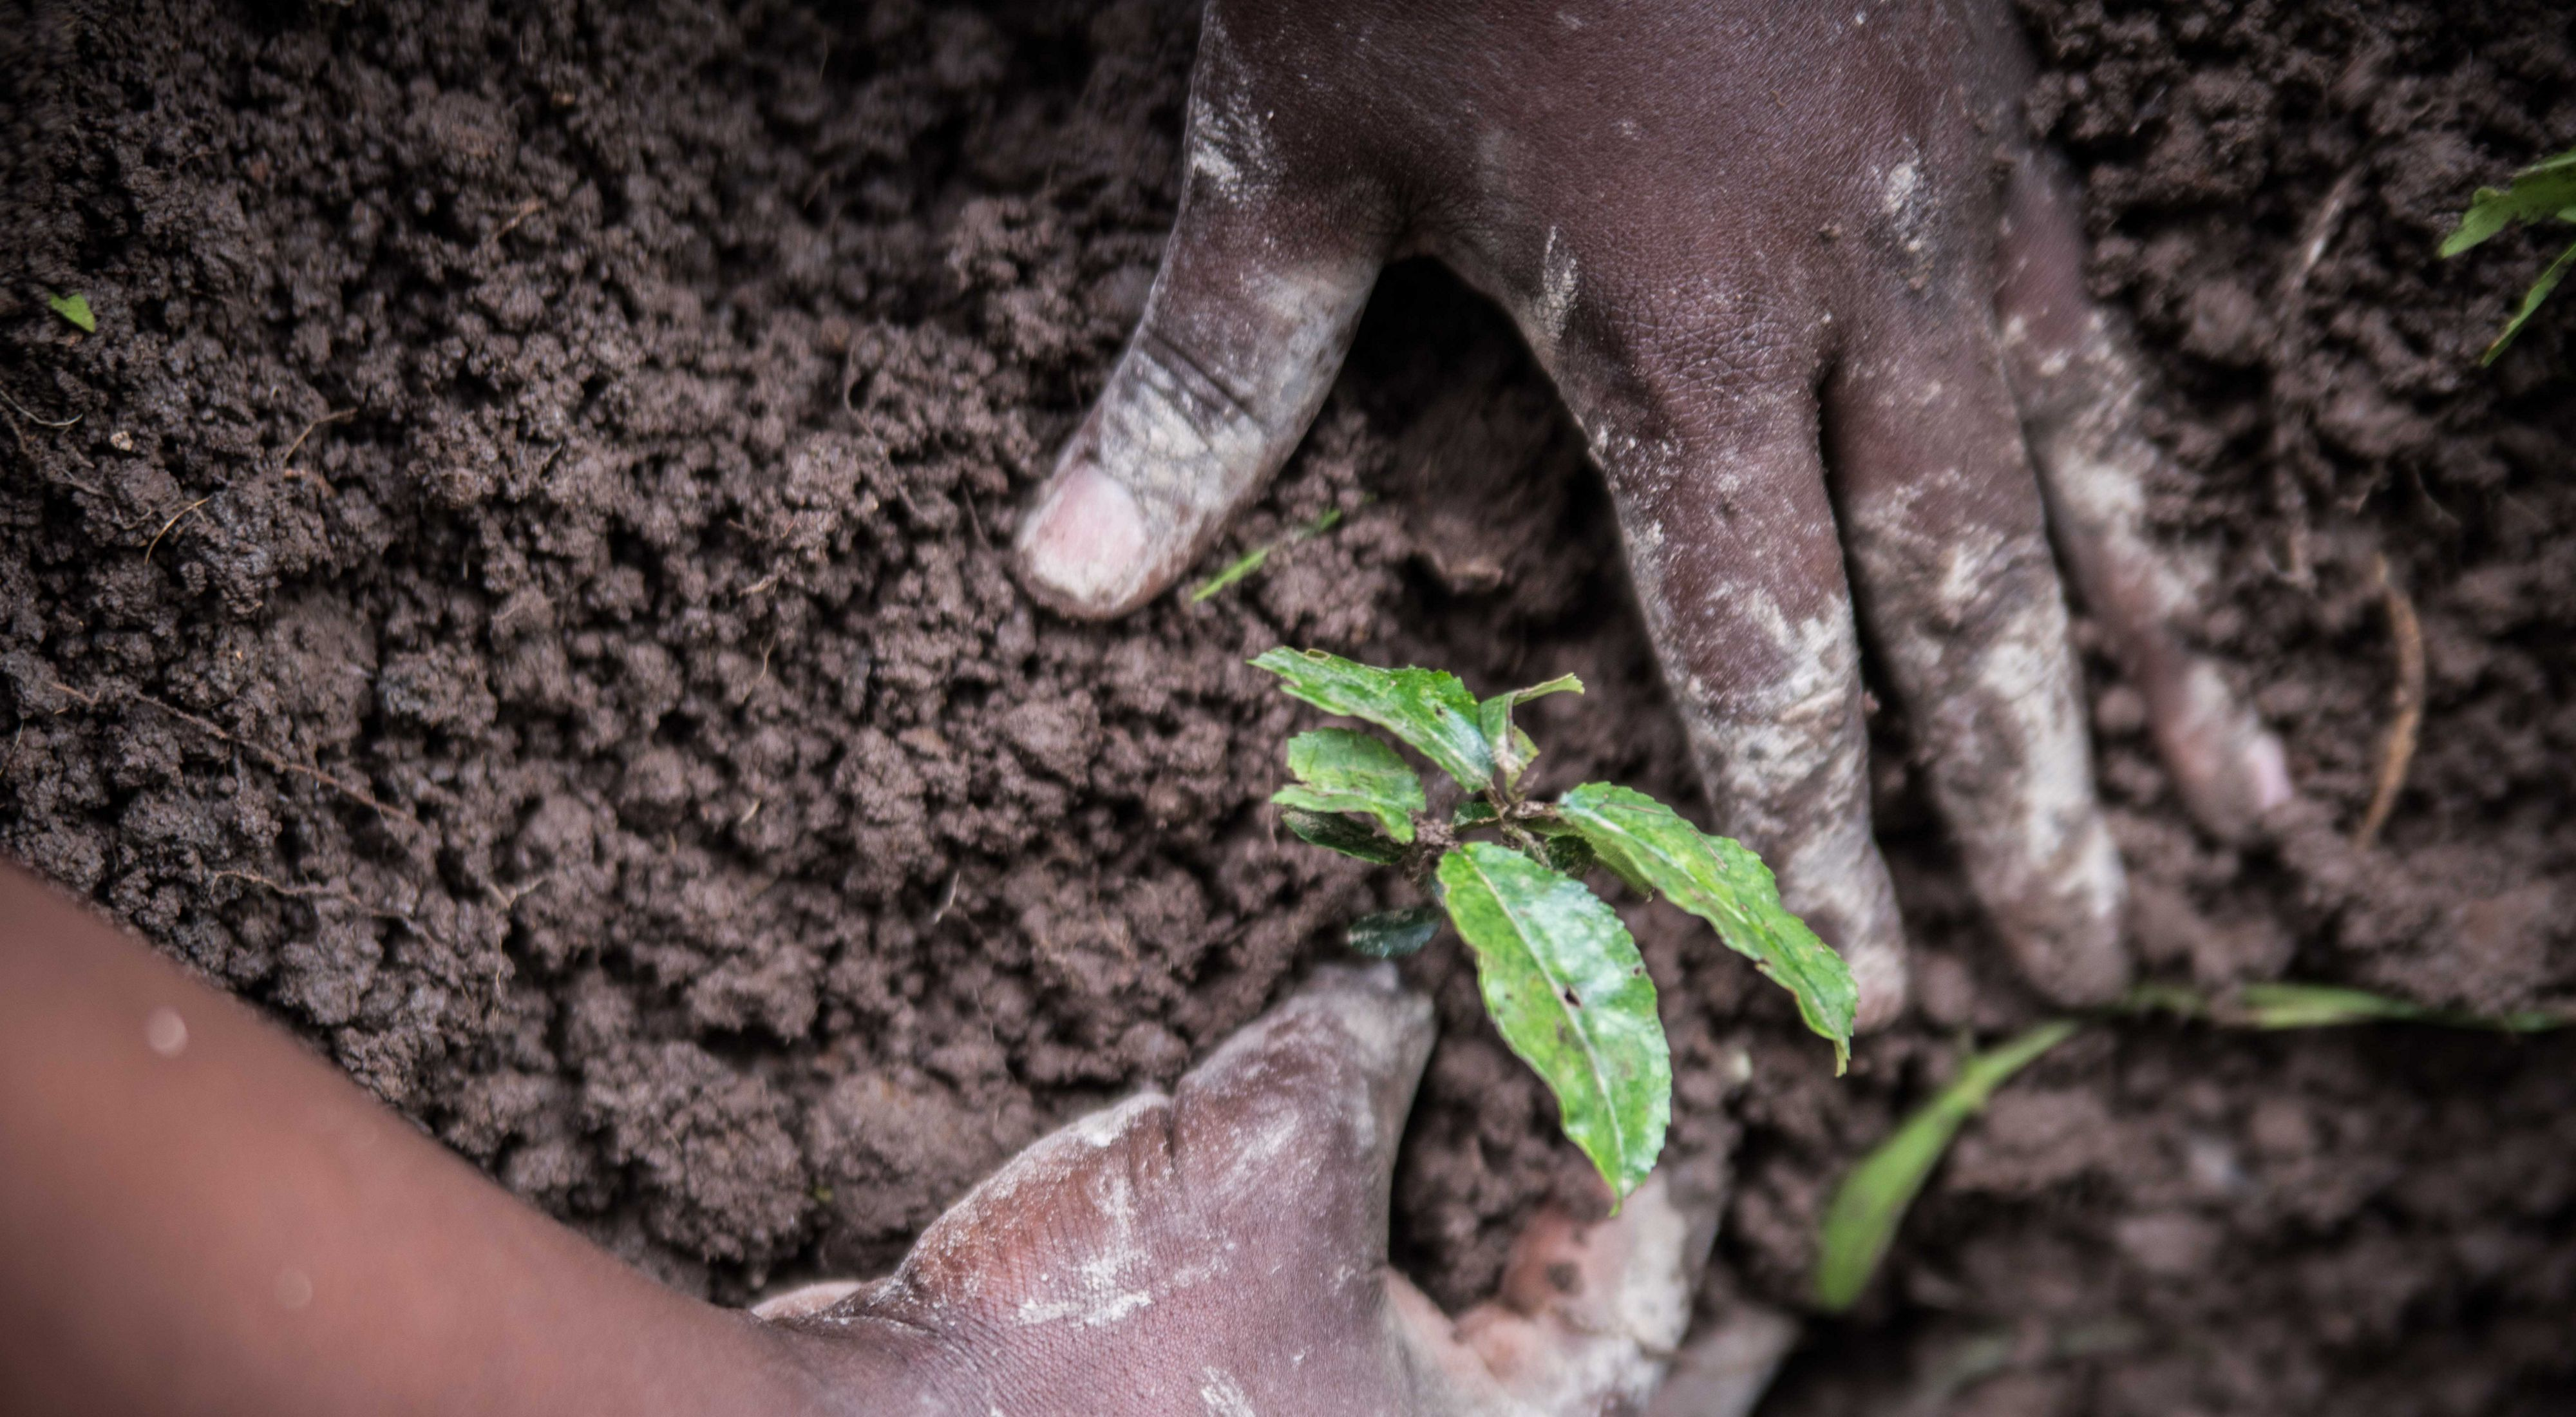 TNC Kenya's team planted 2,000 seedlings at a secondary school and three neighboring farms in Kenya.